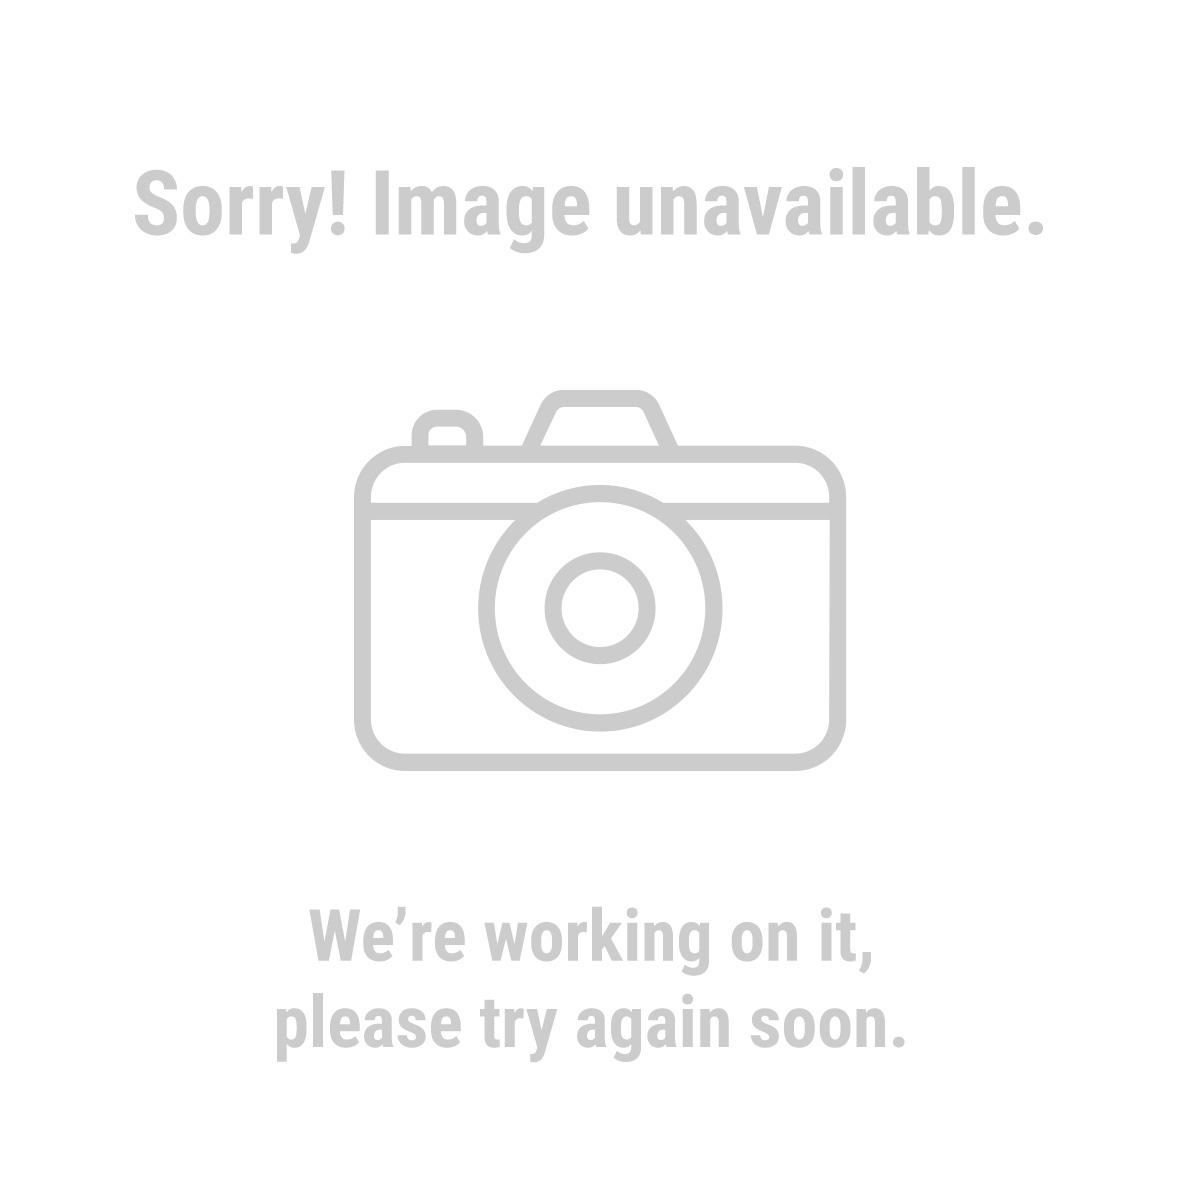 98397 Bikepro LED Headlight